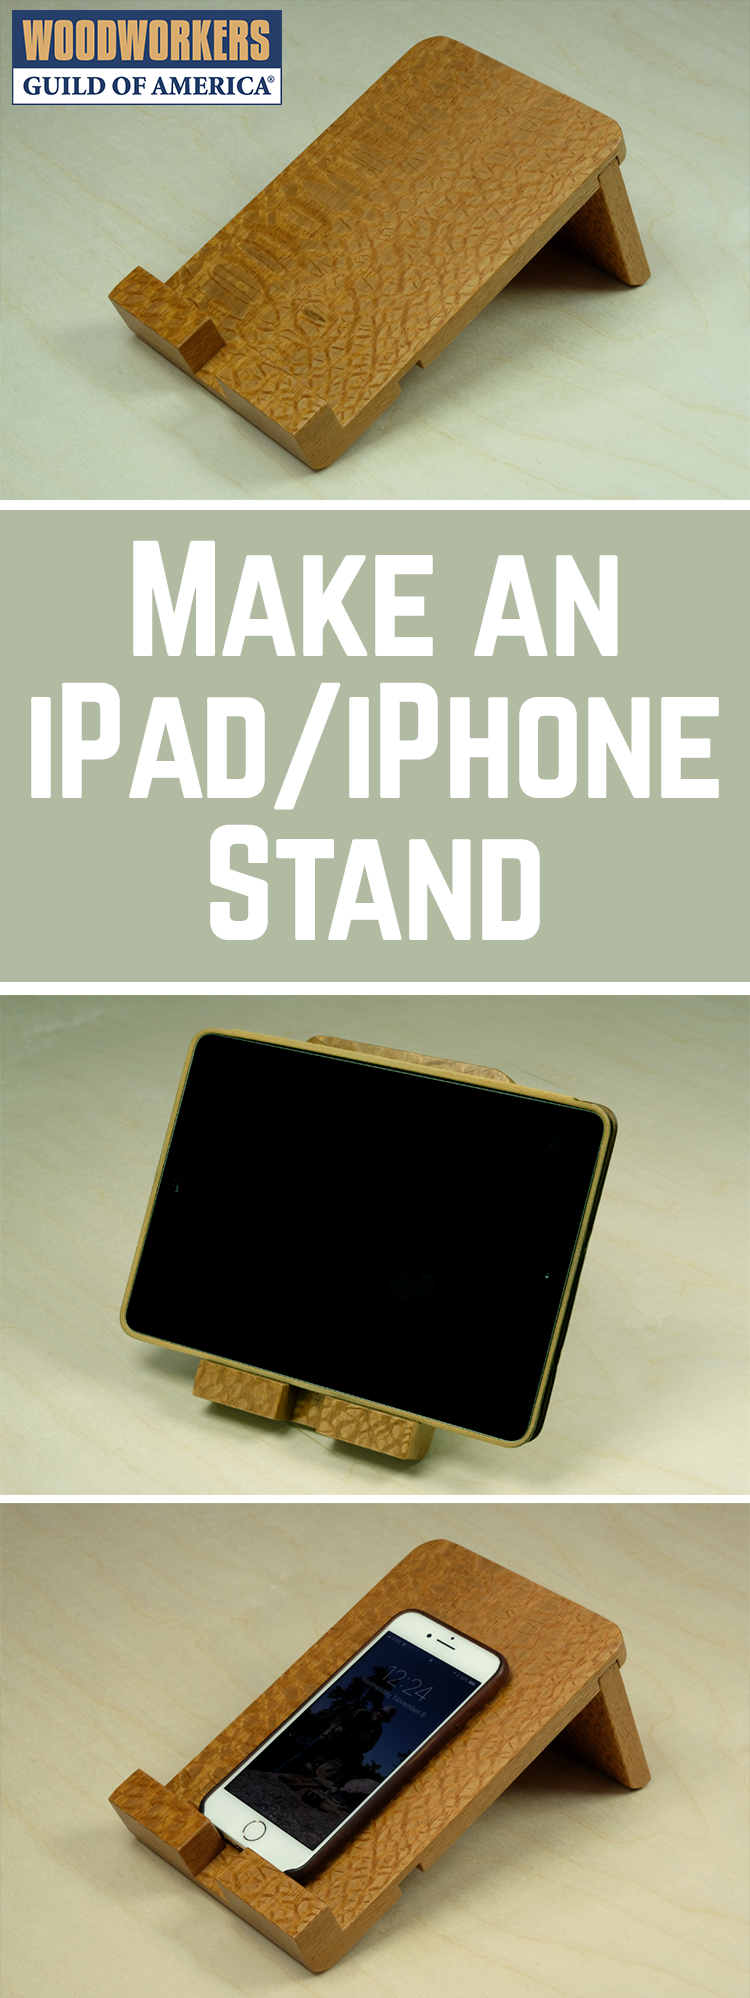 How to Make an iPad, iPhone, Tablet, or Smartphone Stand | WWGOA